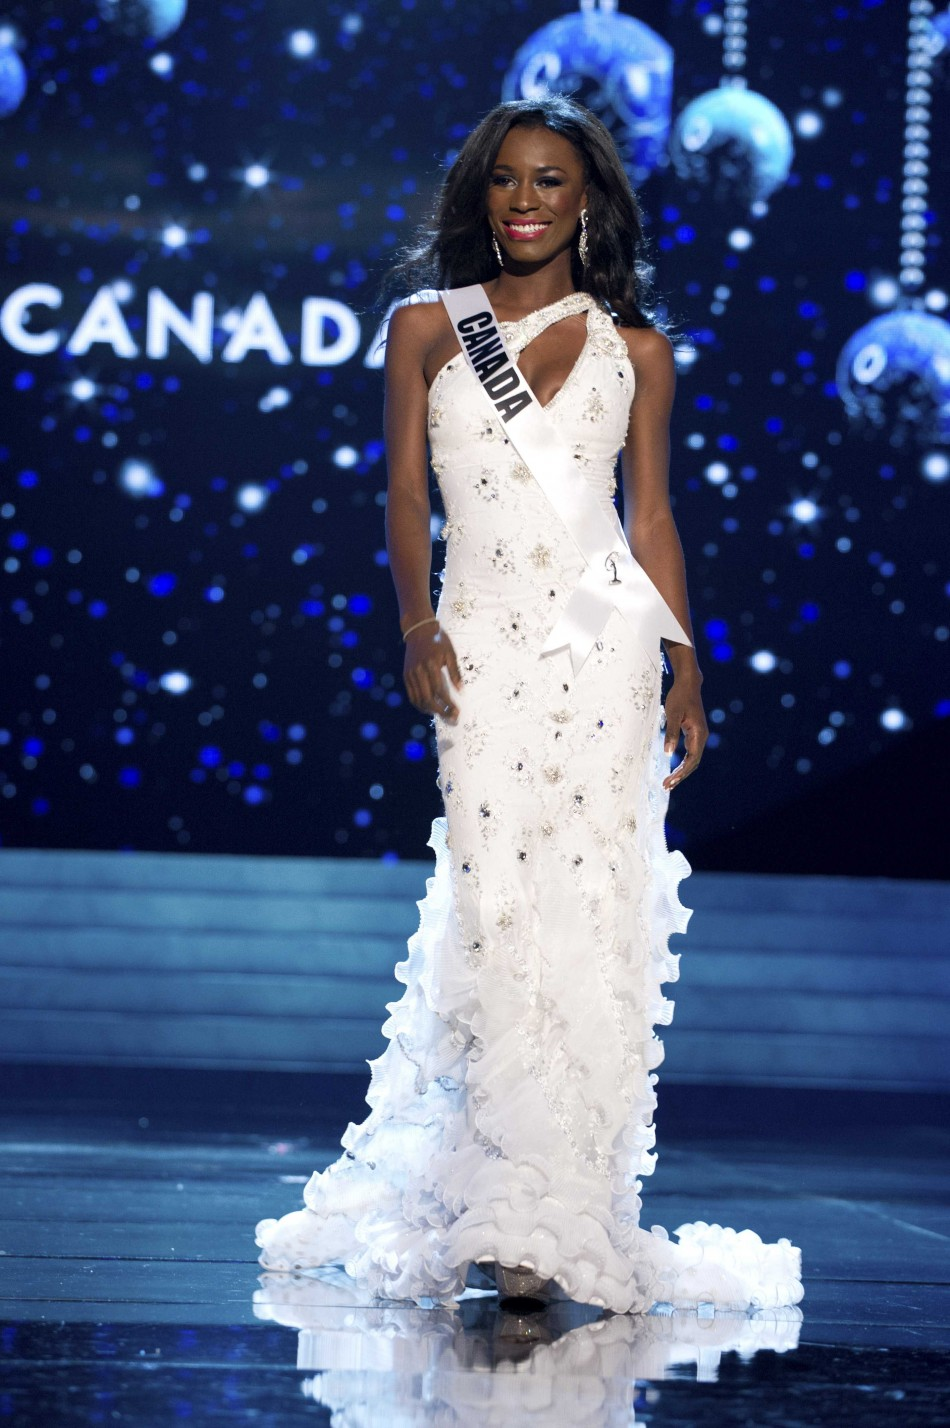 Miss Canada 2012 Yamoah competes during 2012 Miss Universe Presentation Show in Las Vegas